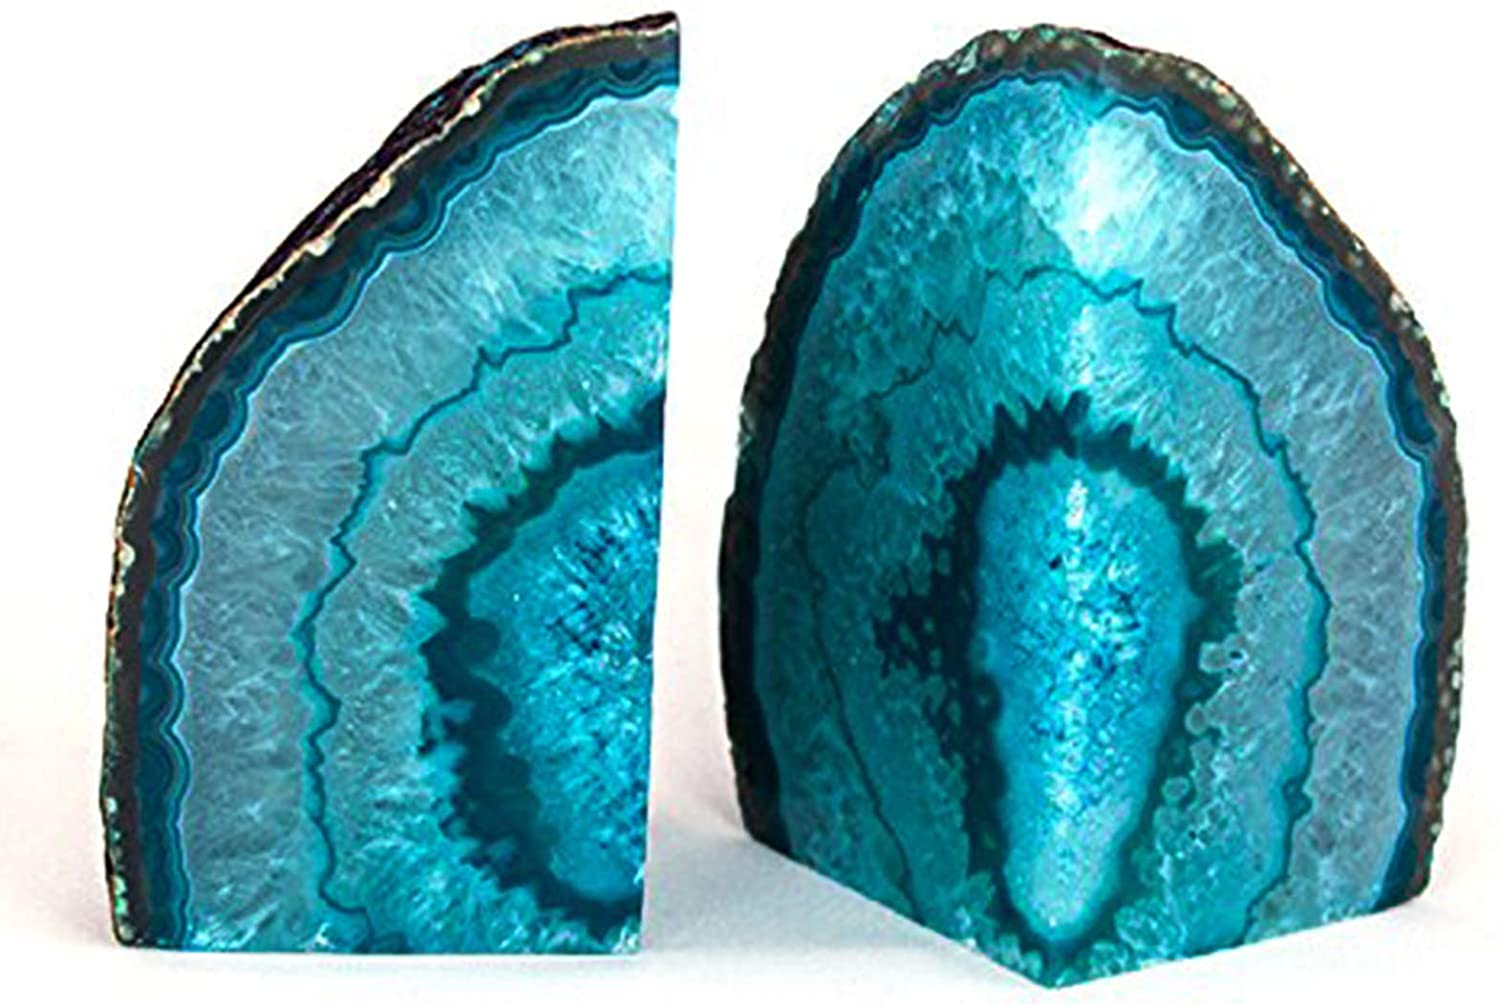 AMOYSTONE Agate Bookends Teal Pair 2-3 lbs Dyed Cut Agate Stone with Rubber Bumpers